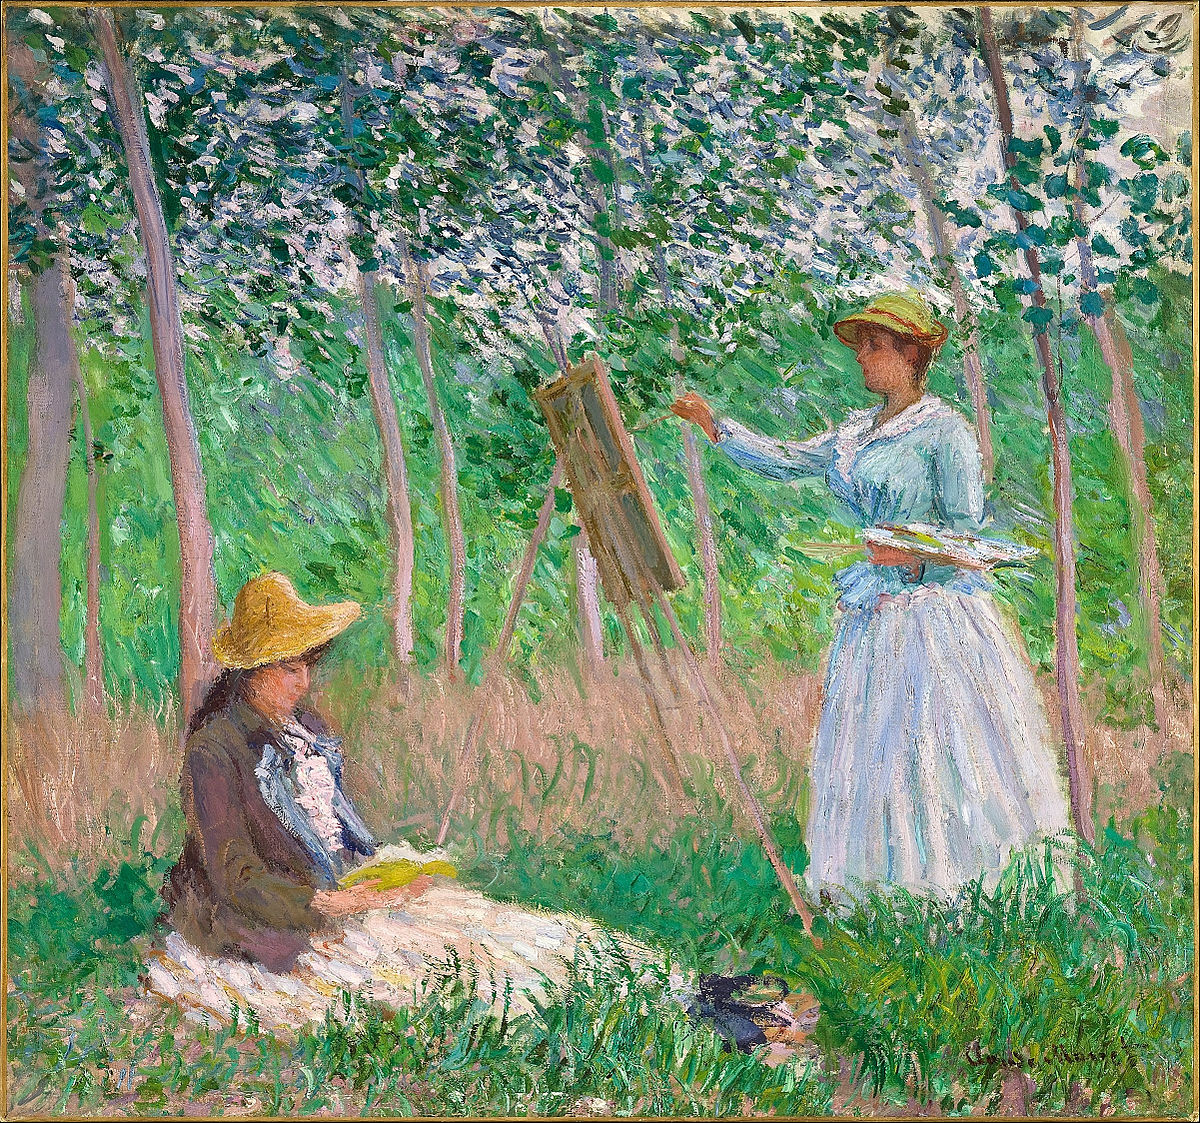 Blanche hosched monet wikipedia for Monet paintings images